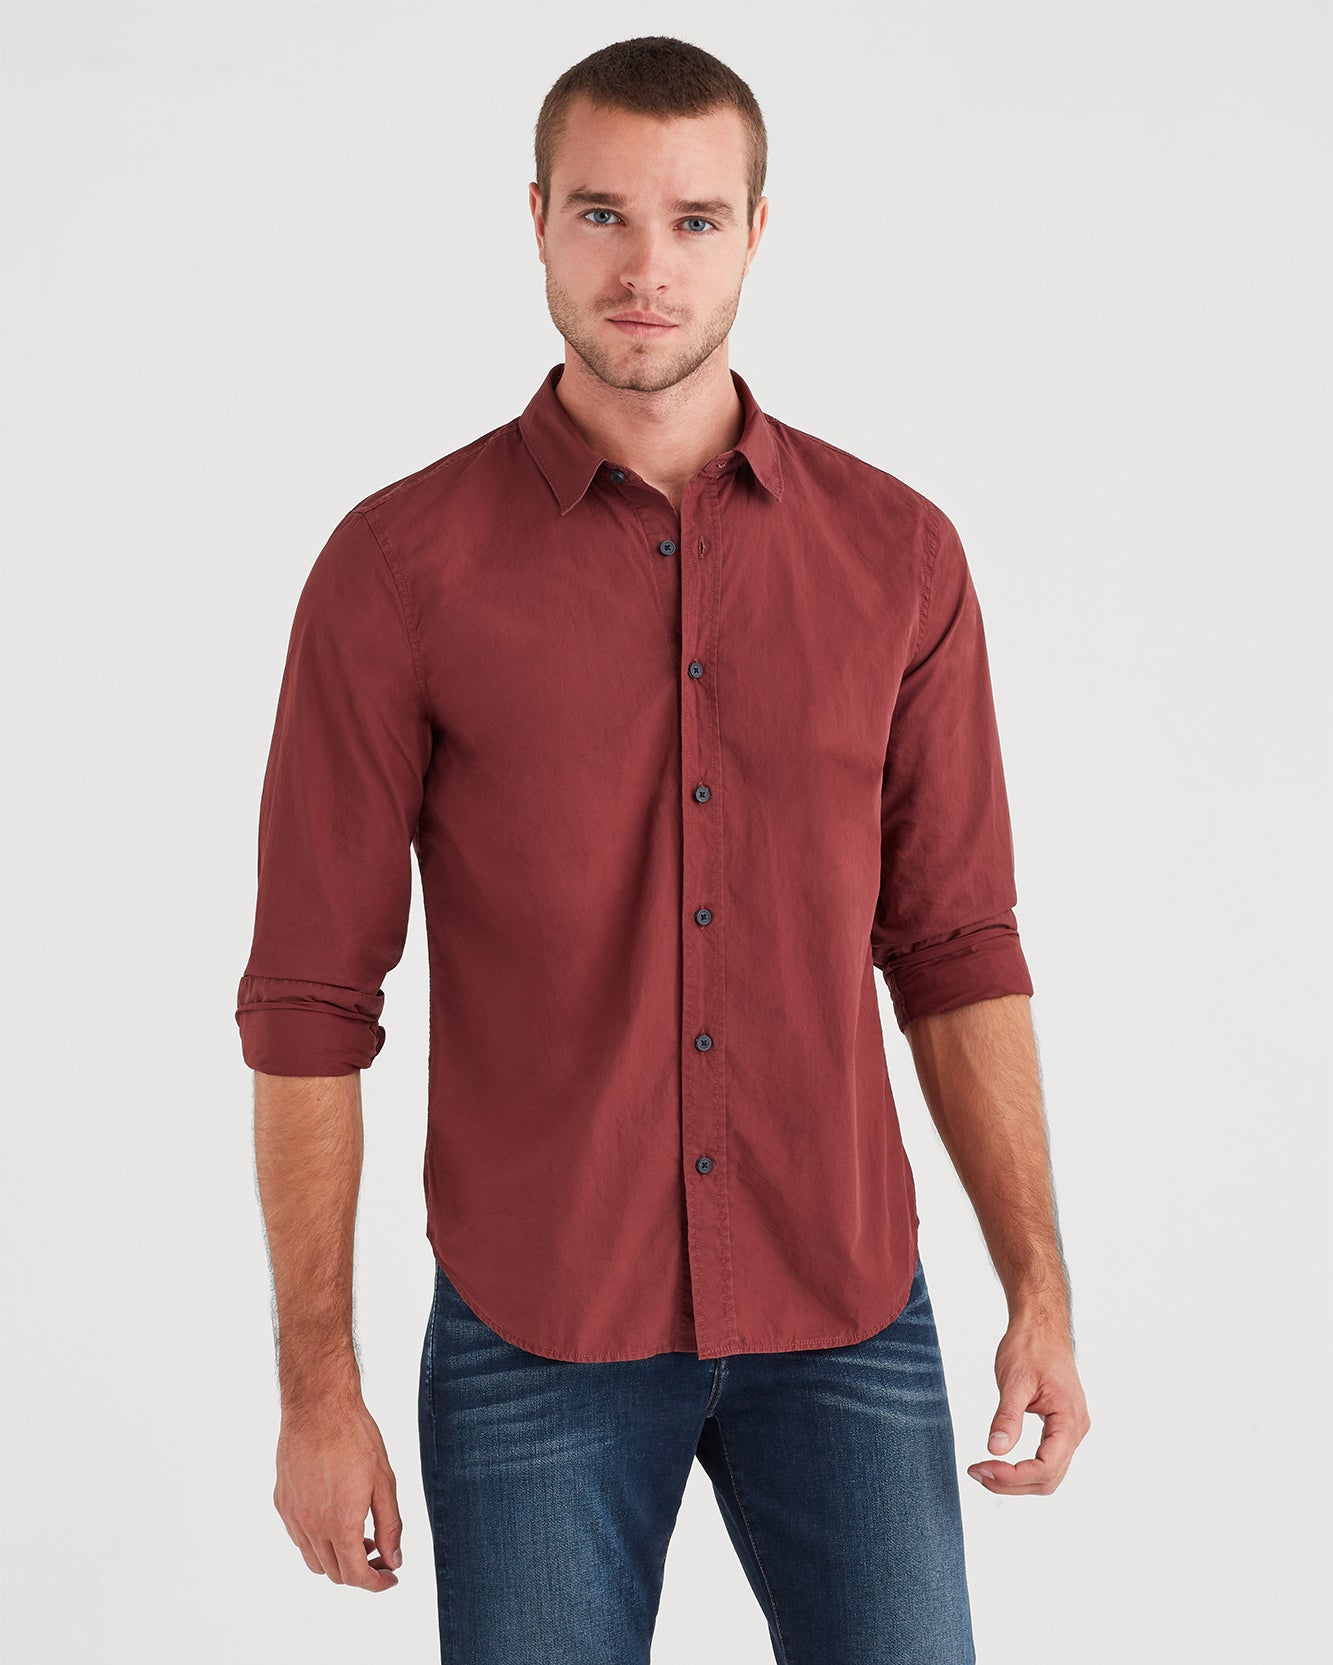 Image of Long Sleeve Washed Poplin Shirt in Dark Burgundy